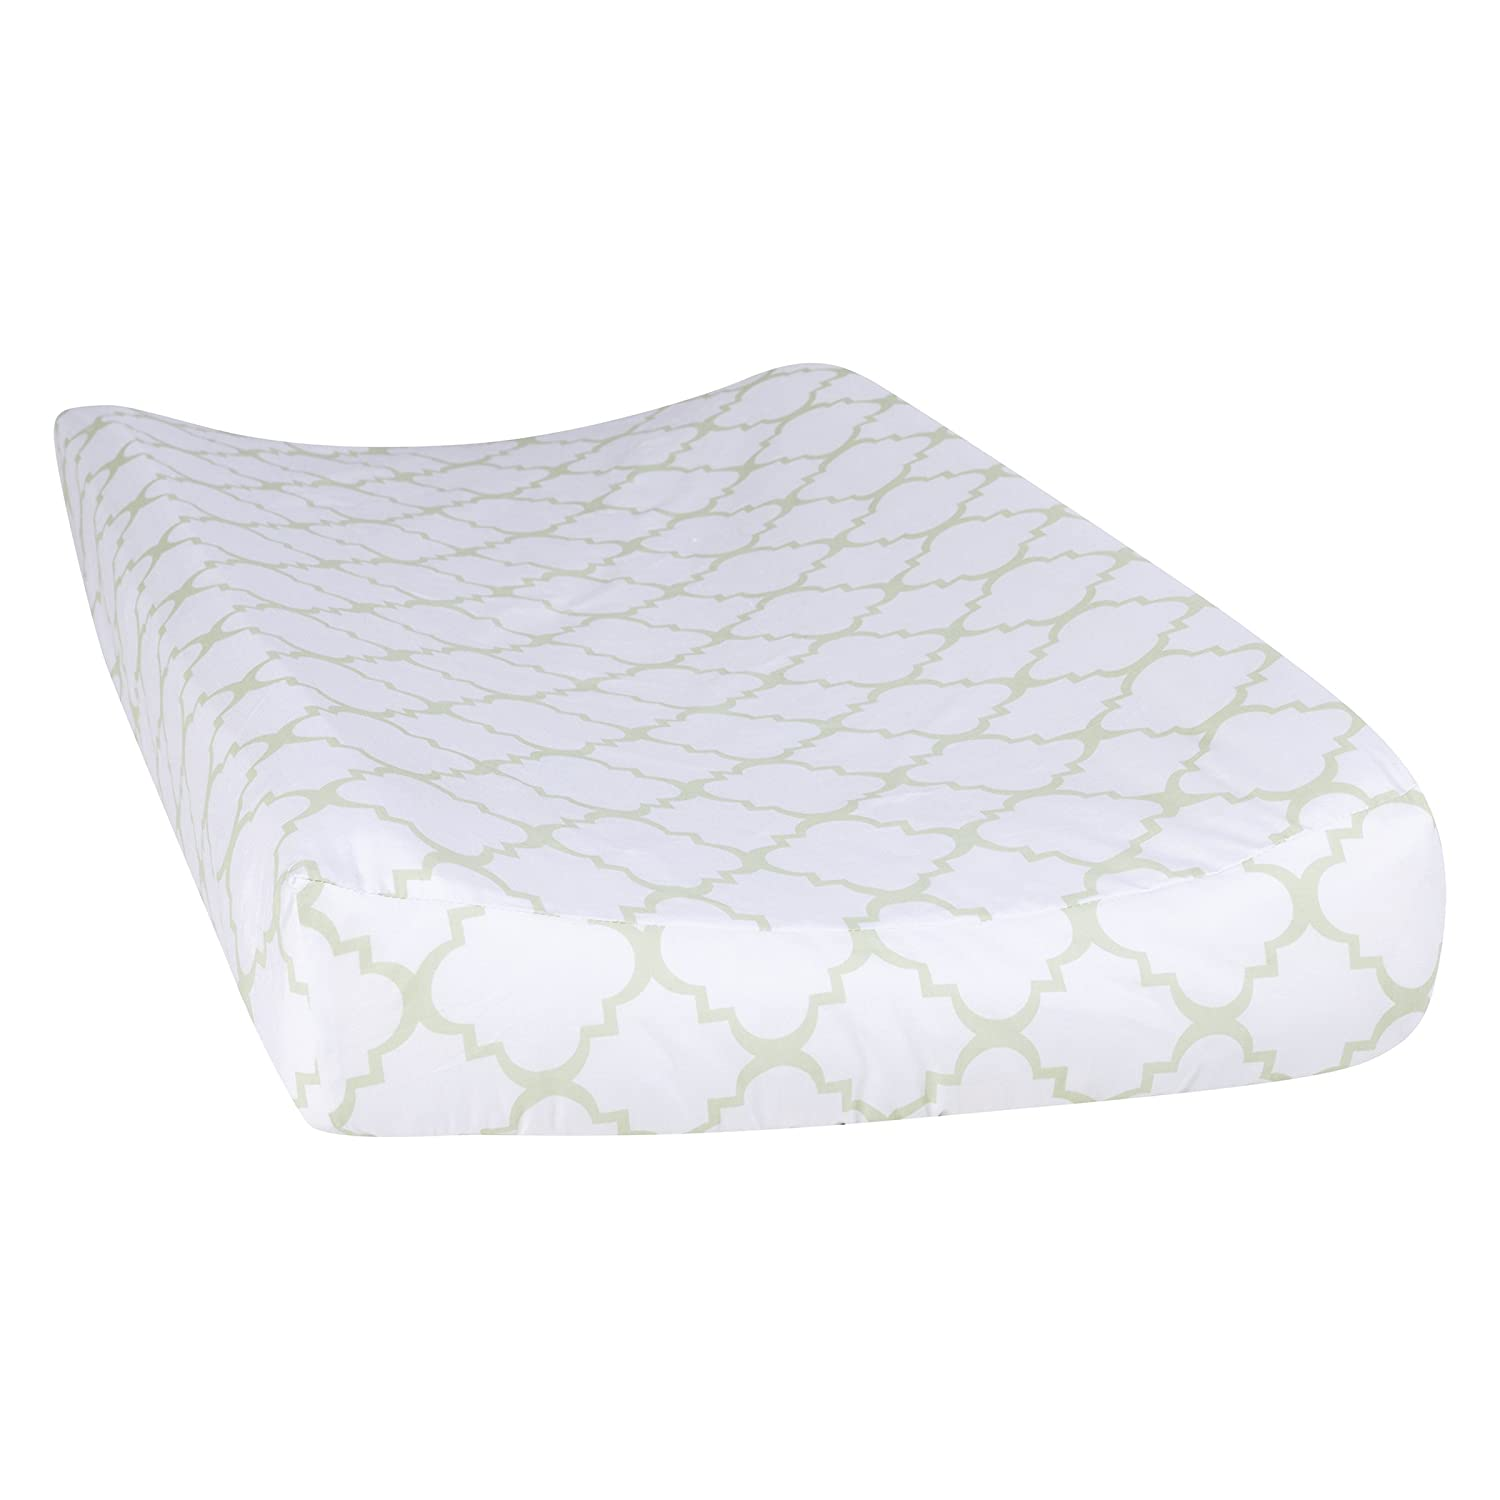 Trend Lab Sea Foam Quatrefoil Changing Pad Cover, Sage 101690